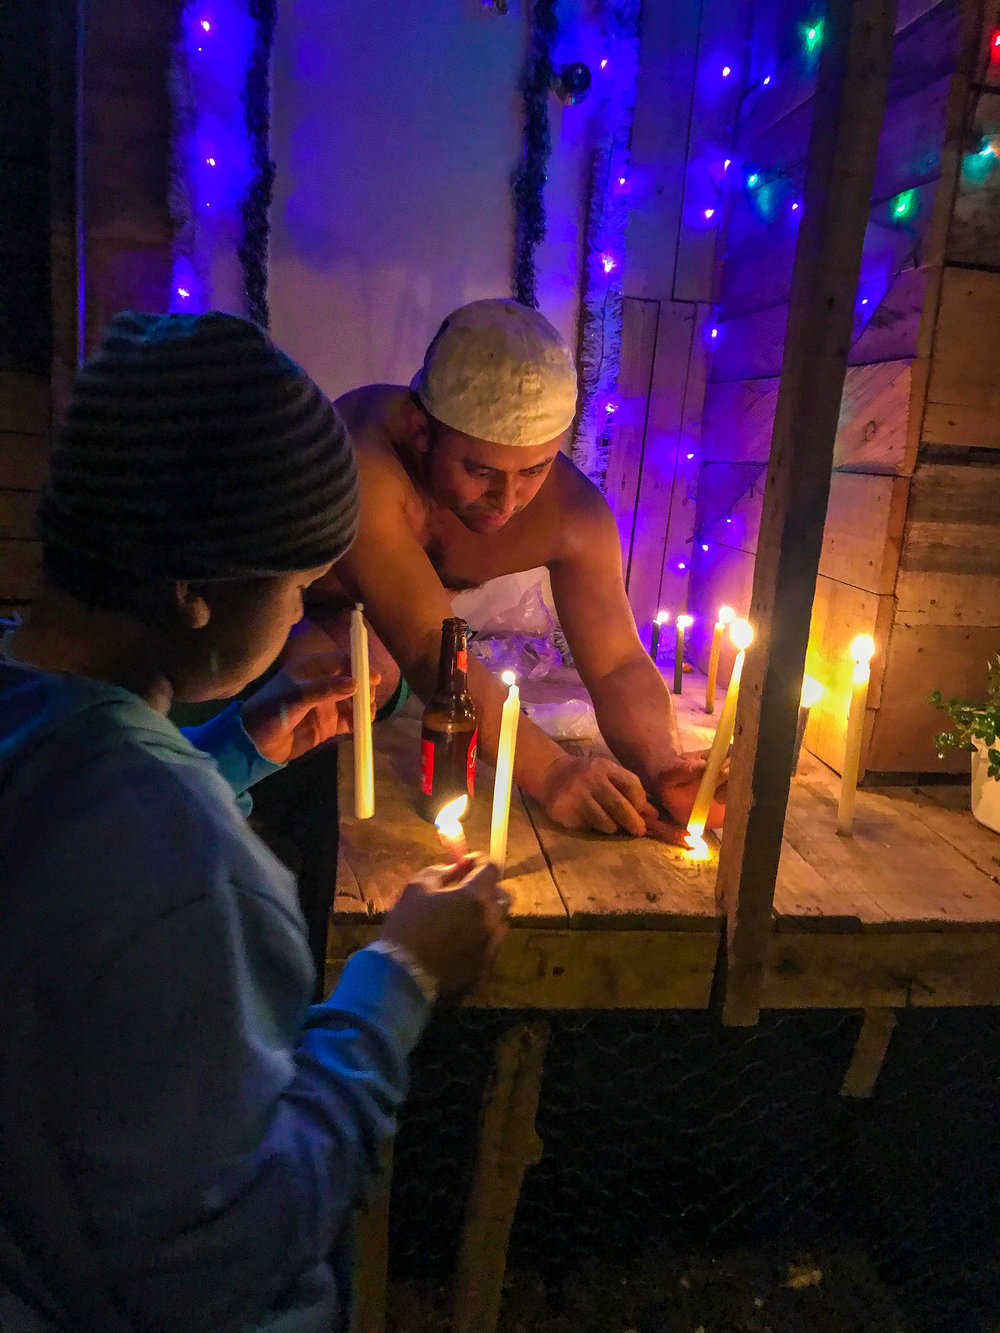 Father and son lighting candles for Día de las Velitas